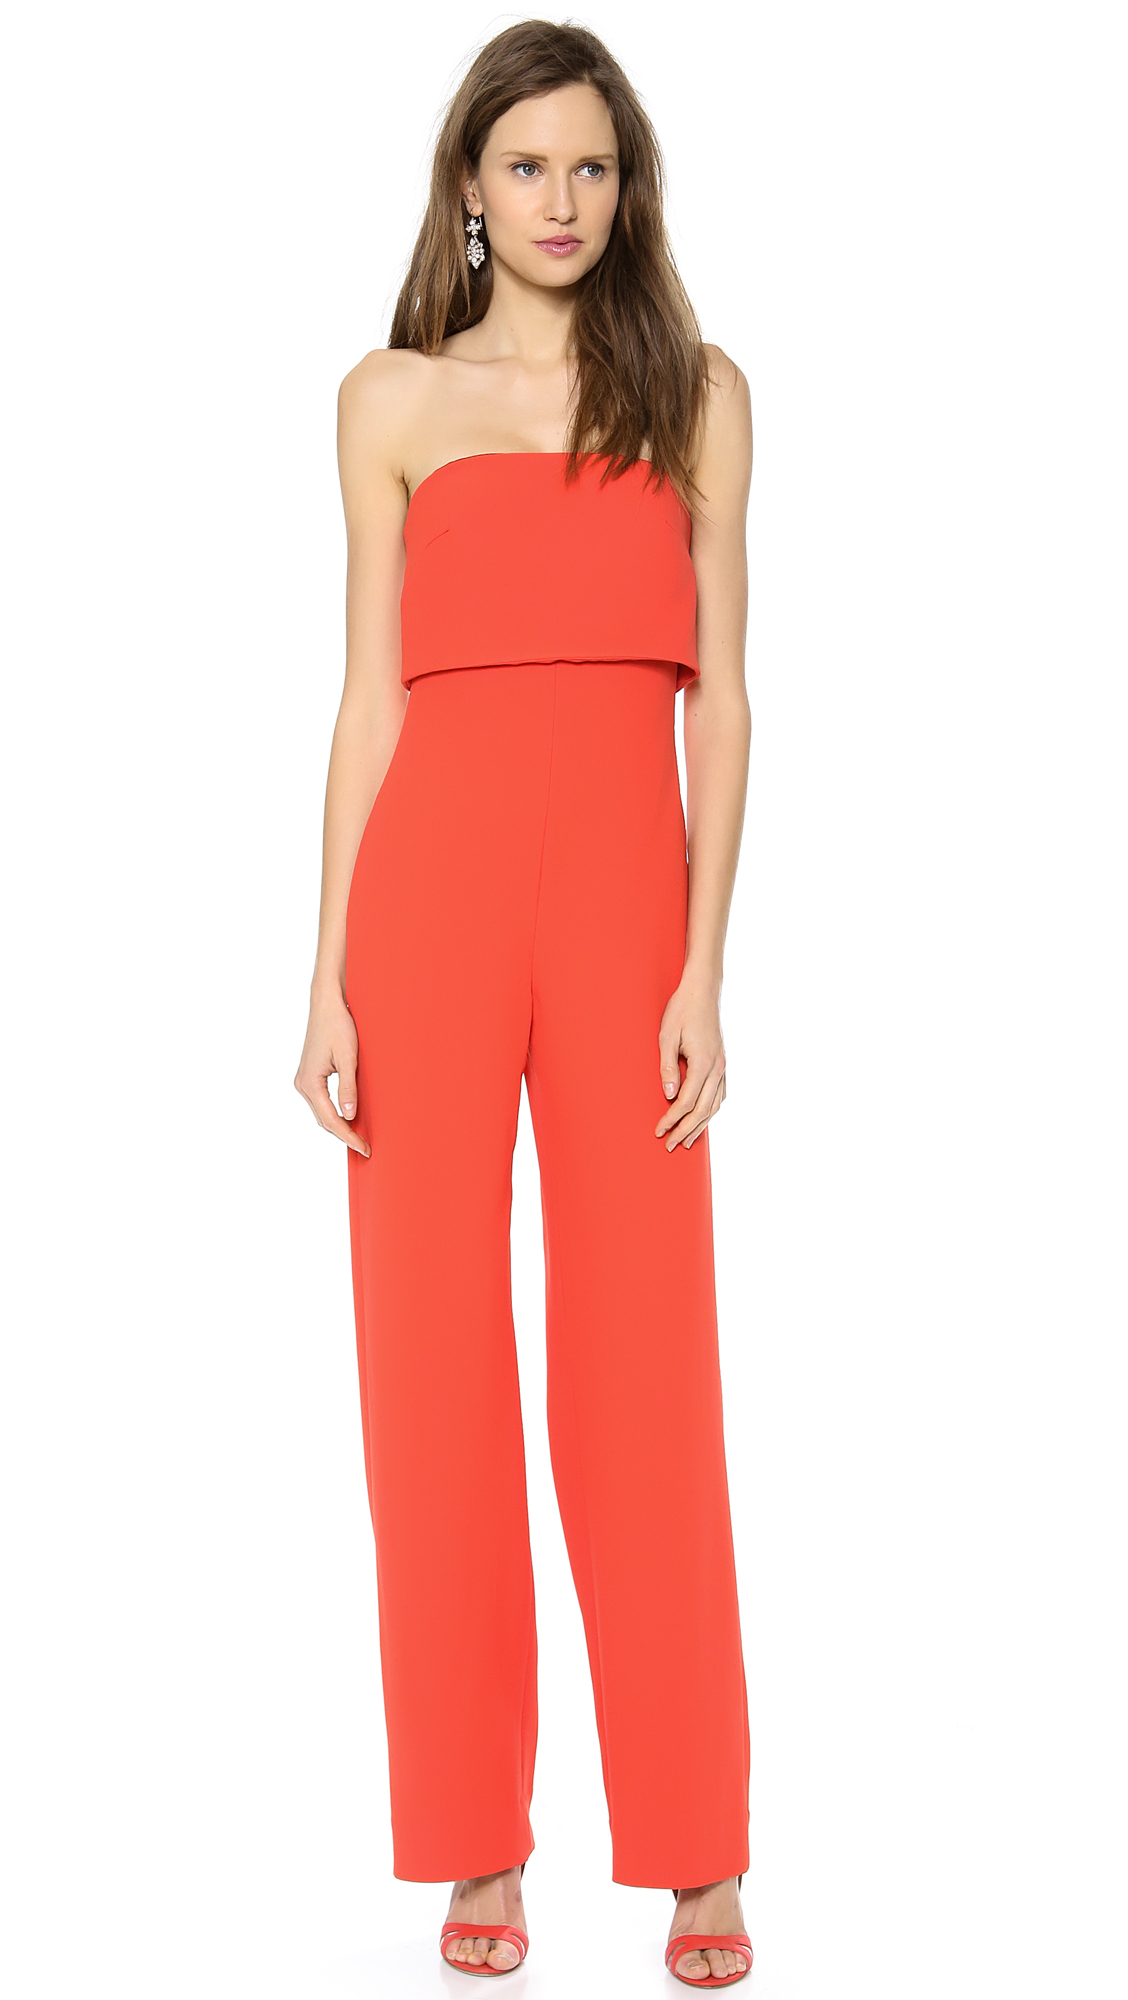 Red Strapless Jumpsuit - Breeze Clothing